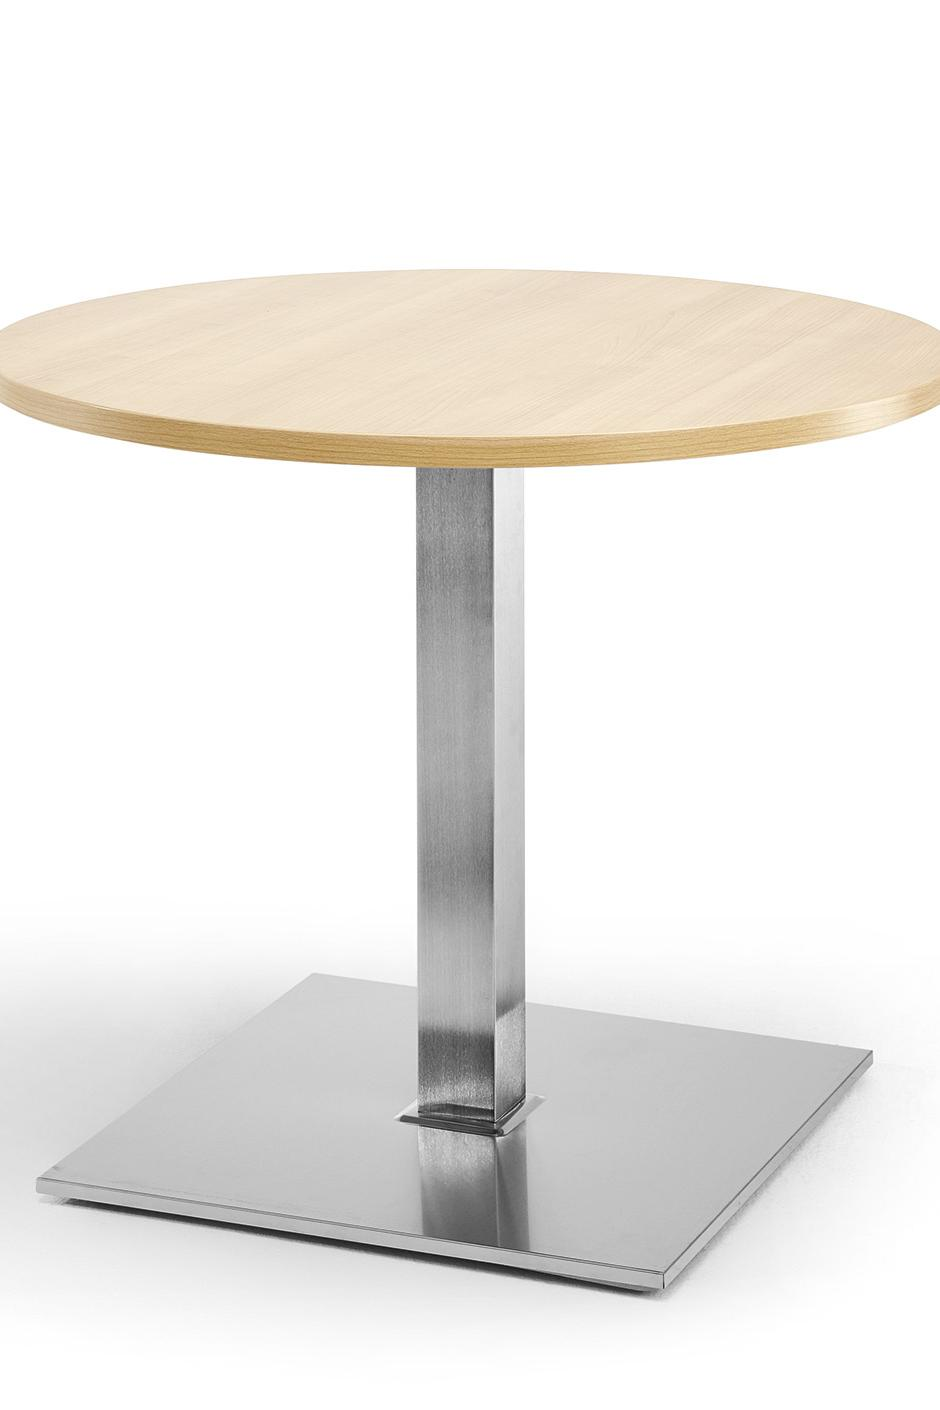 Column-leg table as a bistro table with round table top